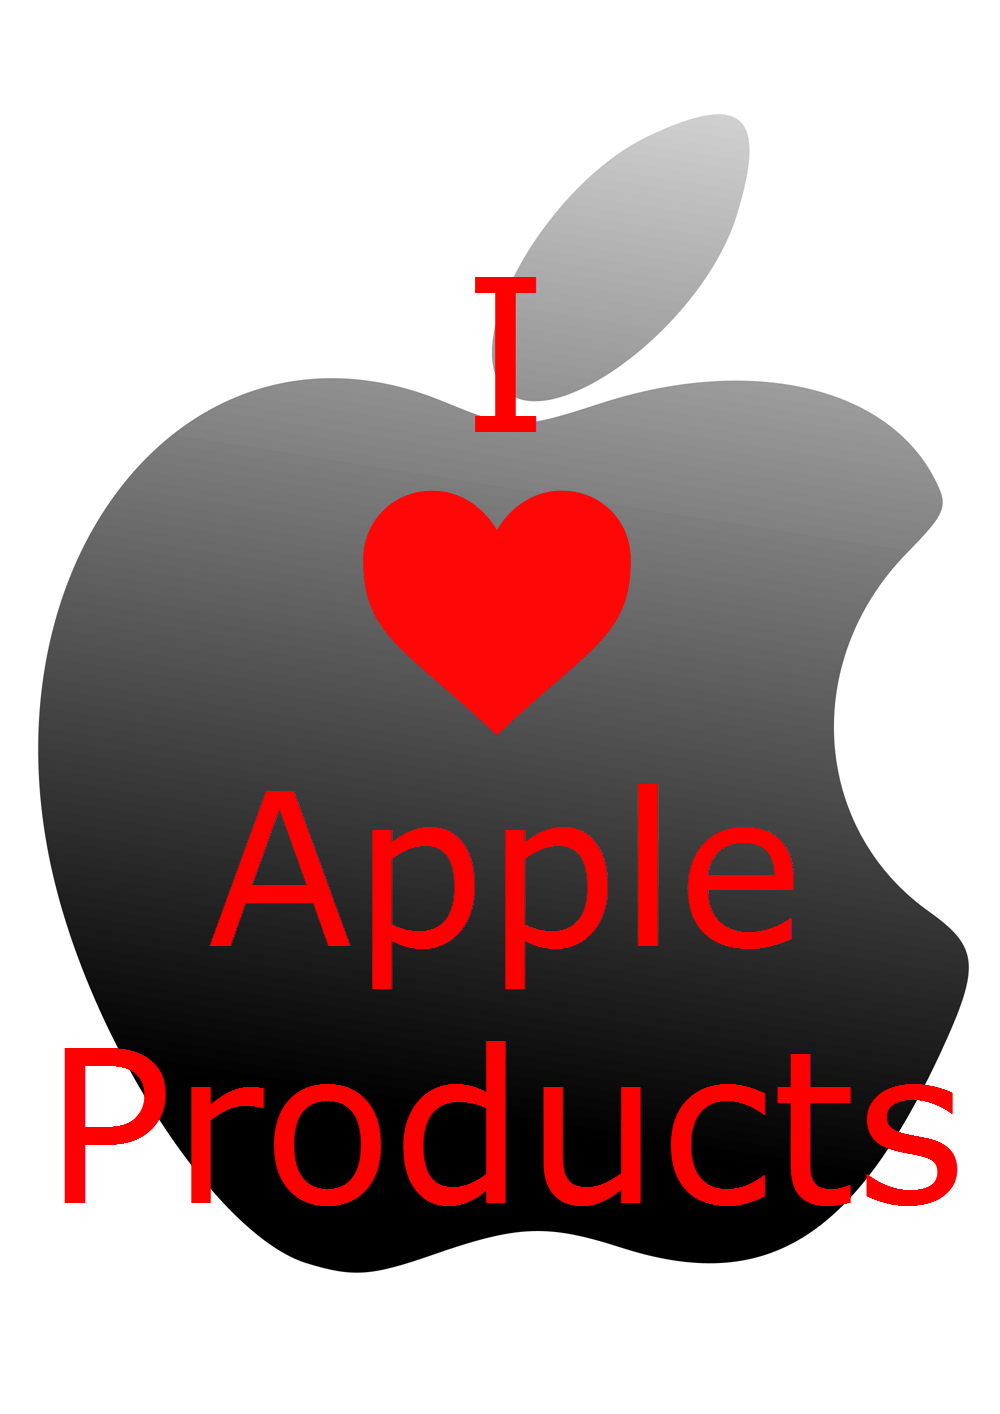 Apple products apple products png - Why I Love Apple Products